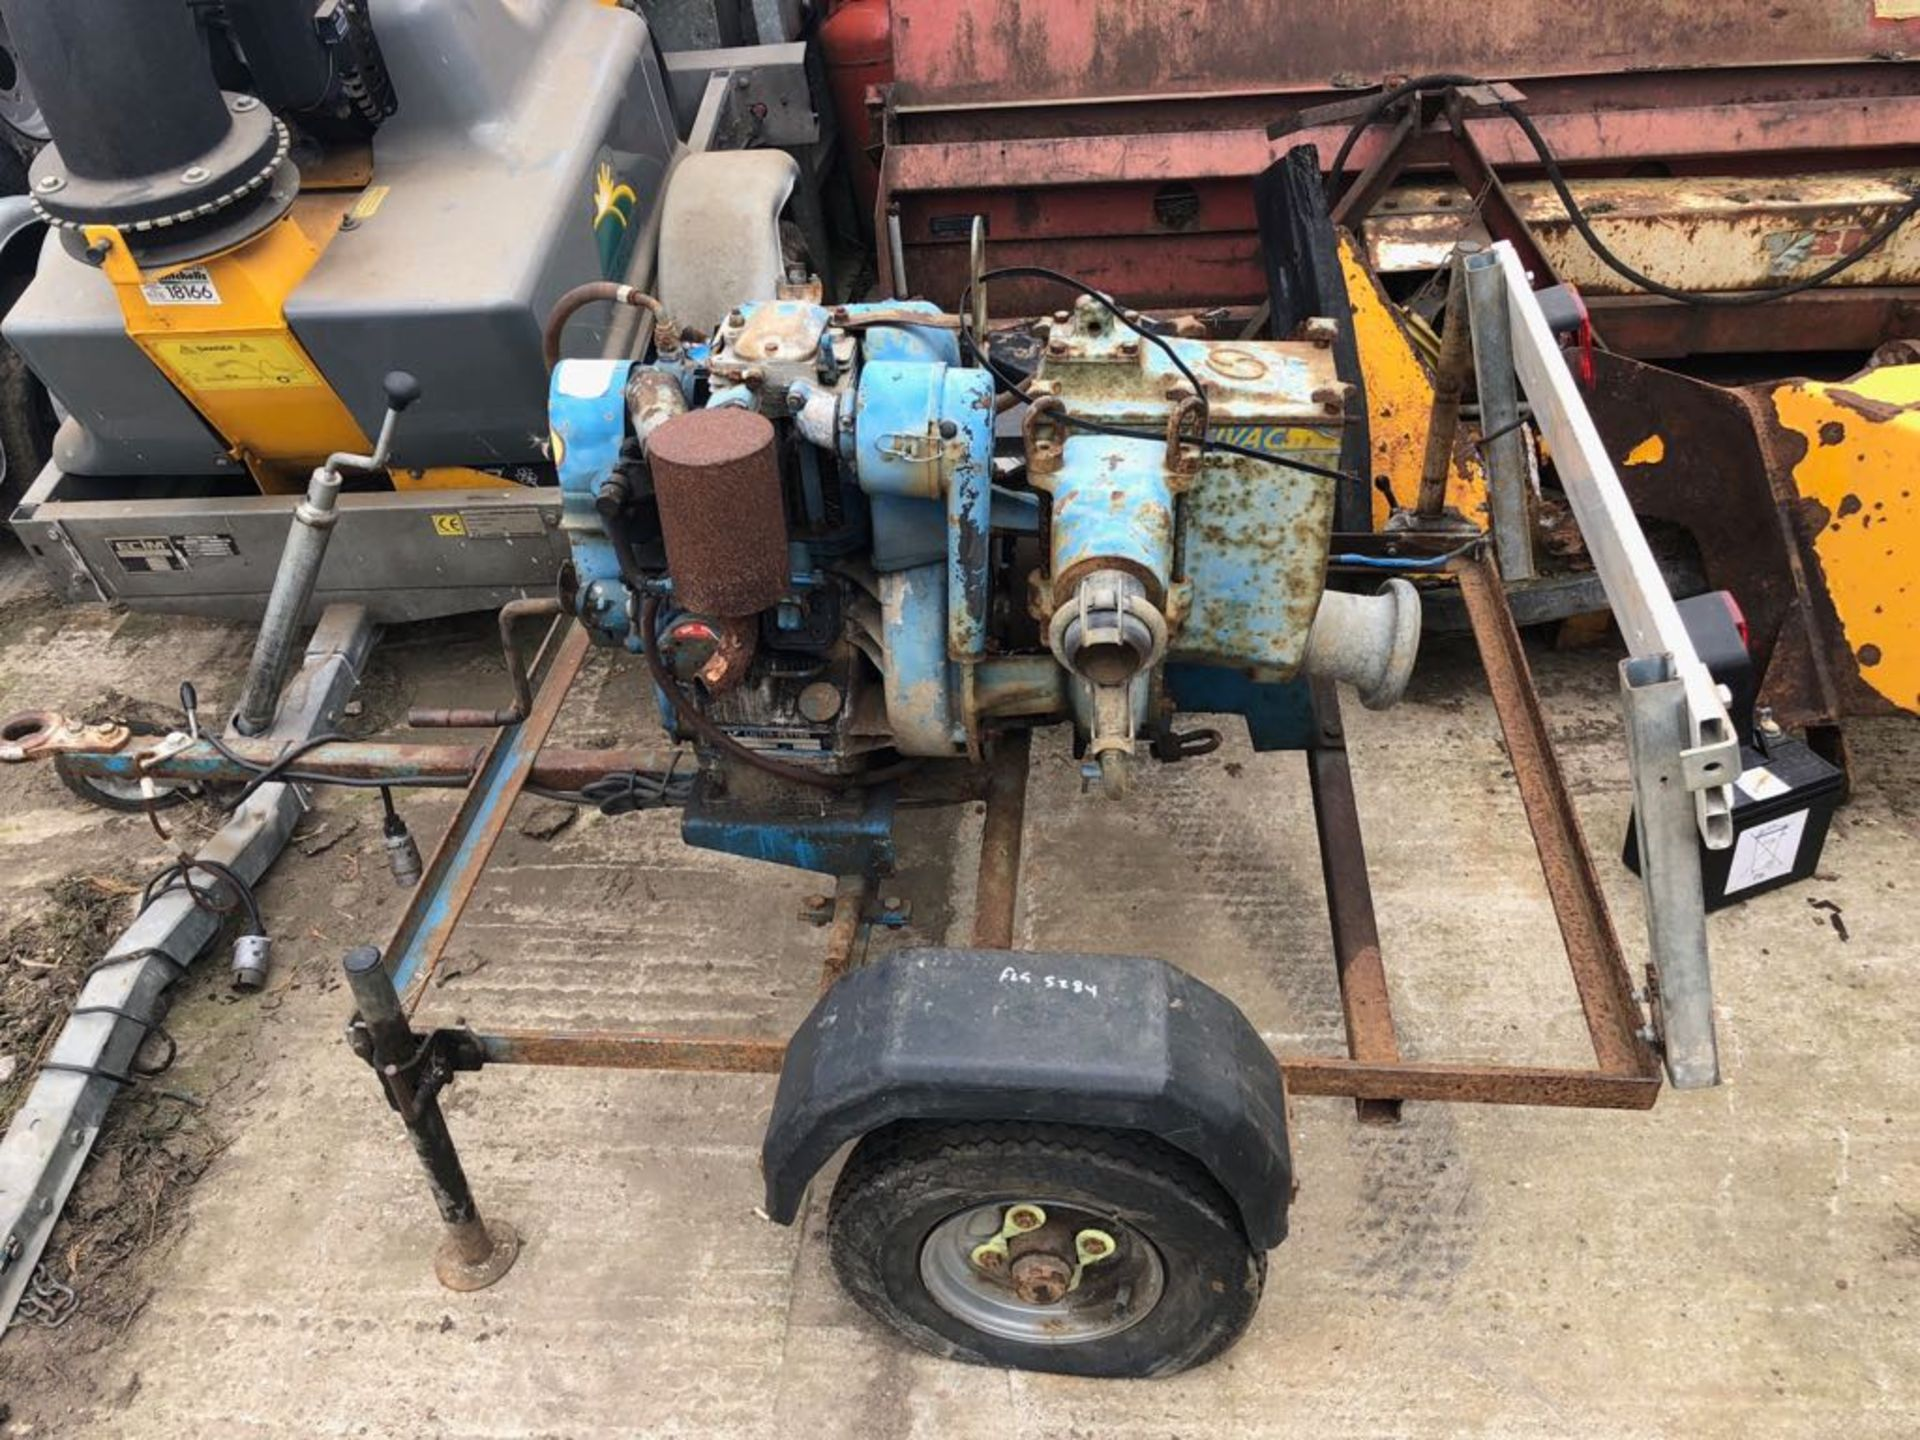 Lot 150 - ANDREW SYKES UNIVAC LISTER PETTER WATER PUMP ON TRAILER - UNTESTED *PLUS VAT*